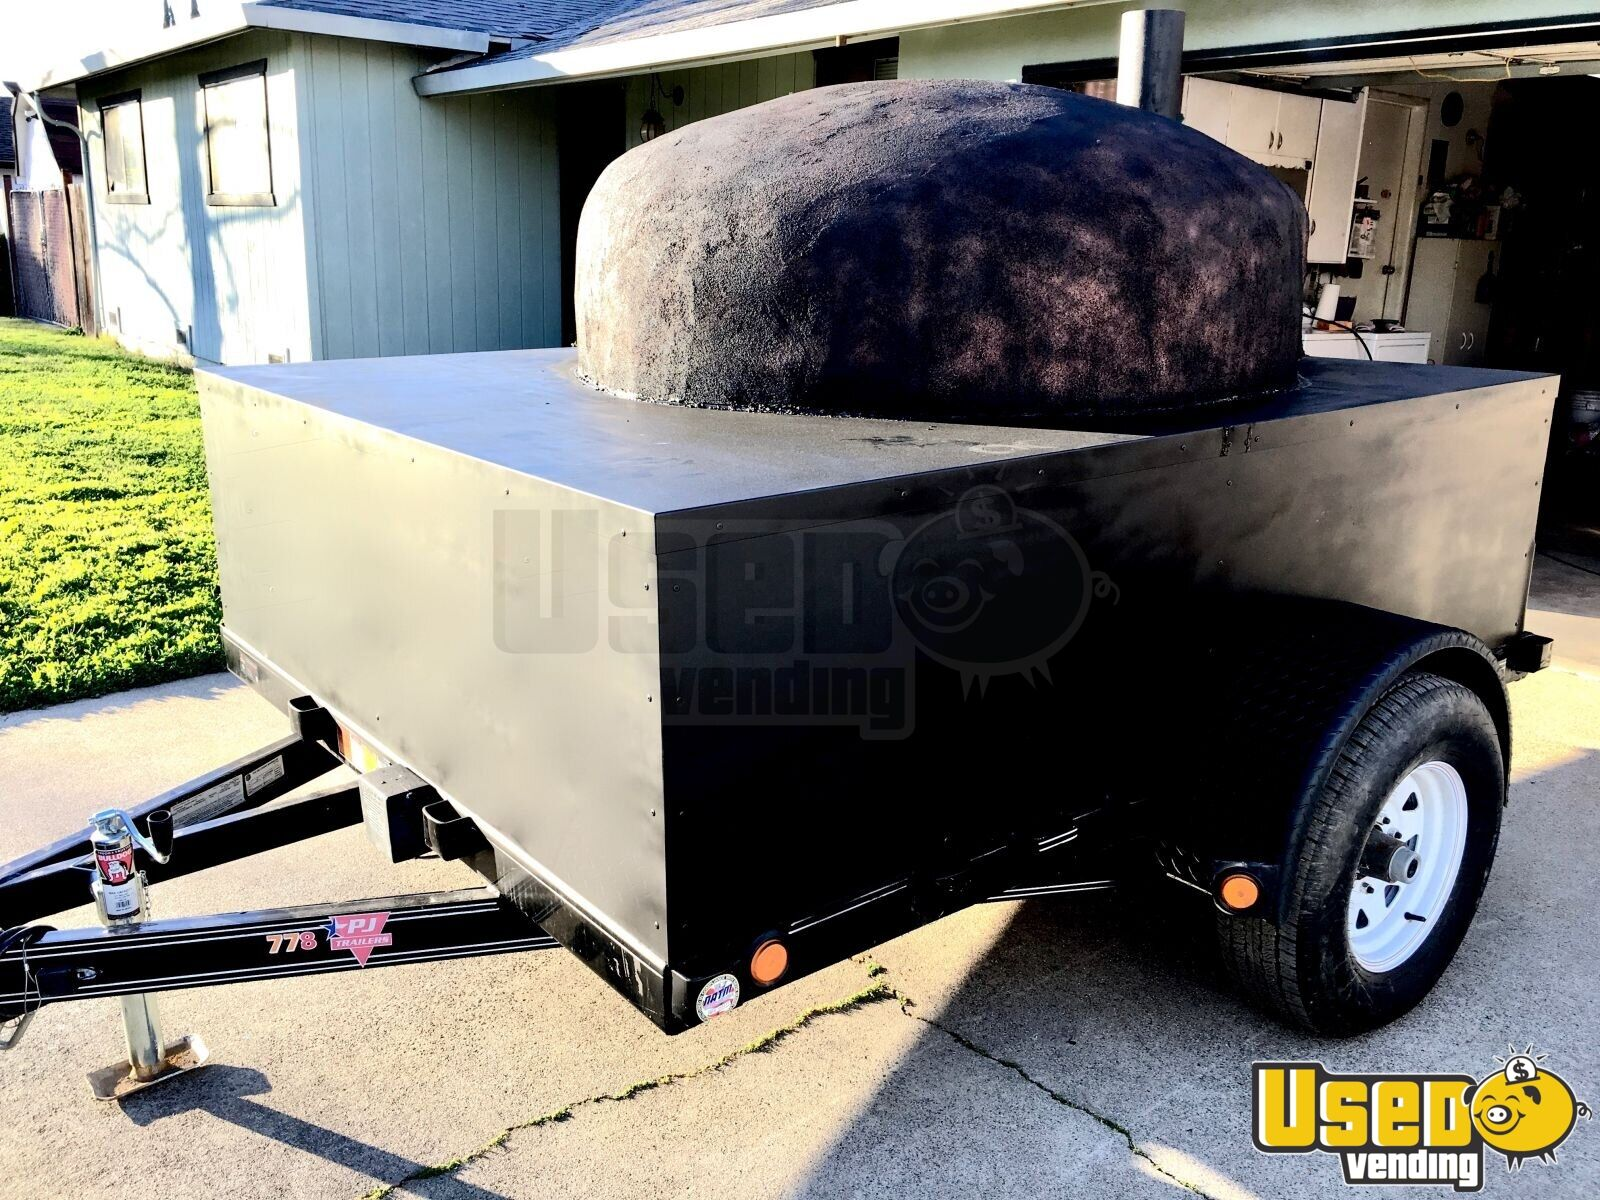 2018 Wood Fired Brick Pizza Oven Trailer For Sale In California